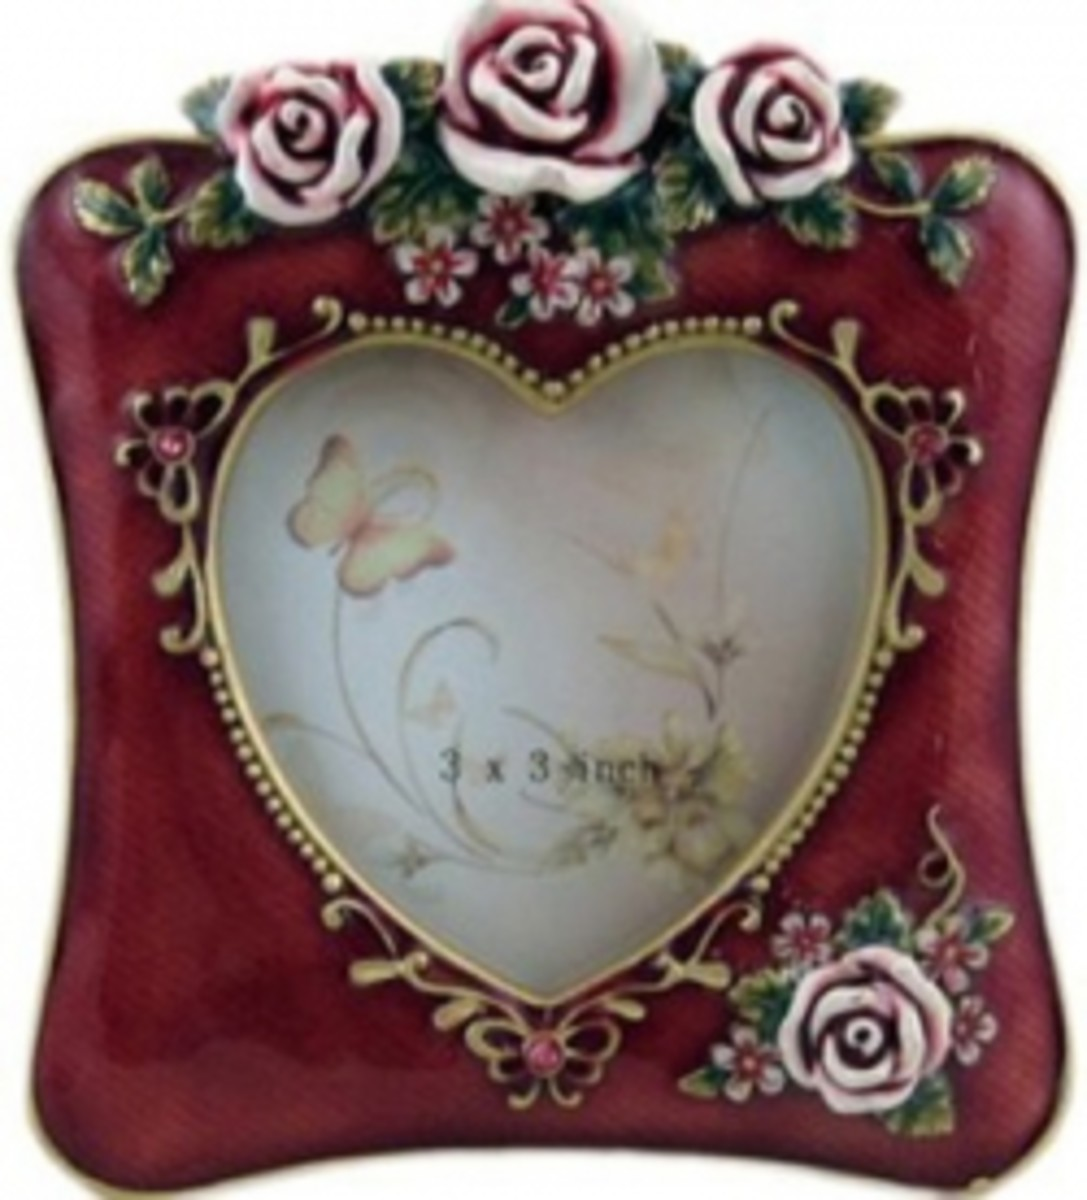 Heart Photo Frames and Plaques